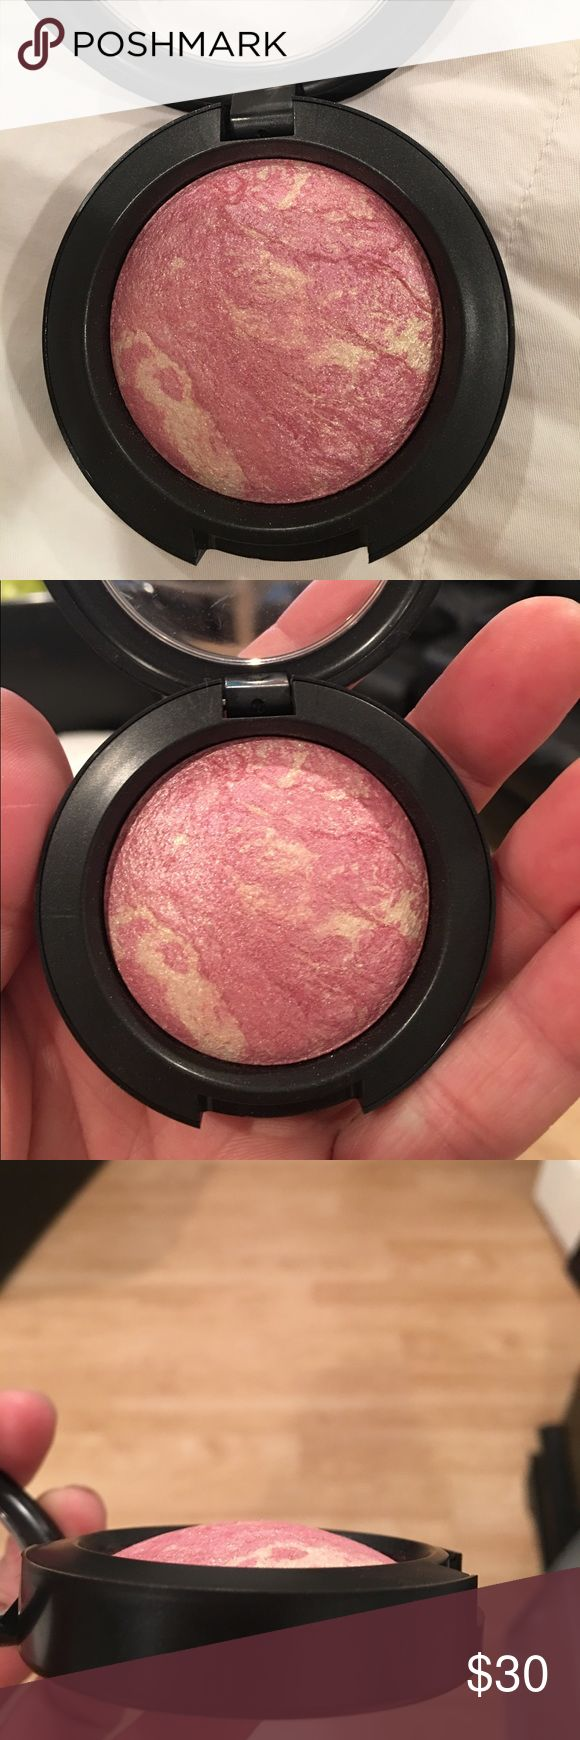 "MAC MINERALIZE BLUSH "" DAFT PINK"" MAC MINERALIZE BLUSH "" DAFT PINK"". NEW NO BOX. NEVER USED. AUTHENTIC ITEMS ONLY! NO FAKES HERE MAC Cosmetics Makeup Blush"